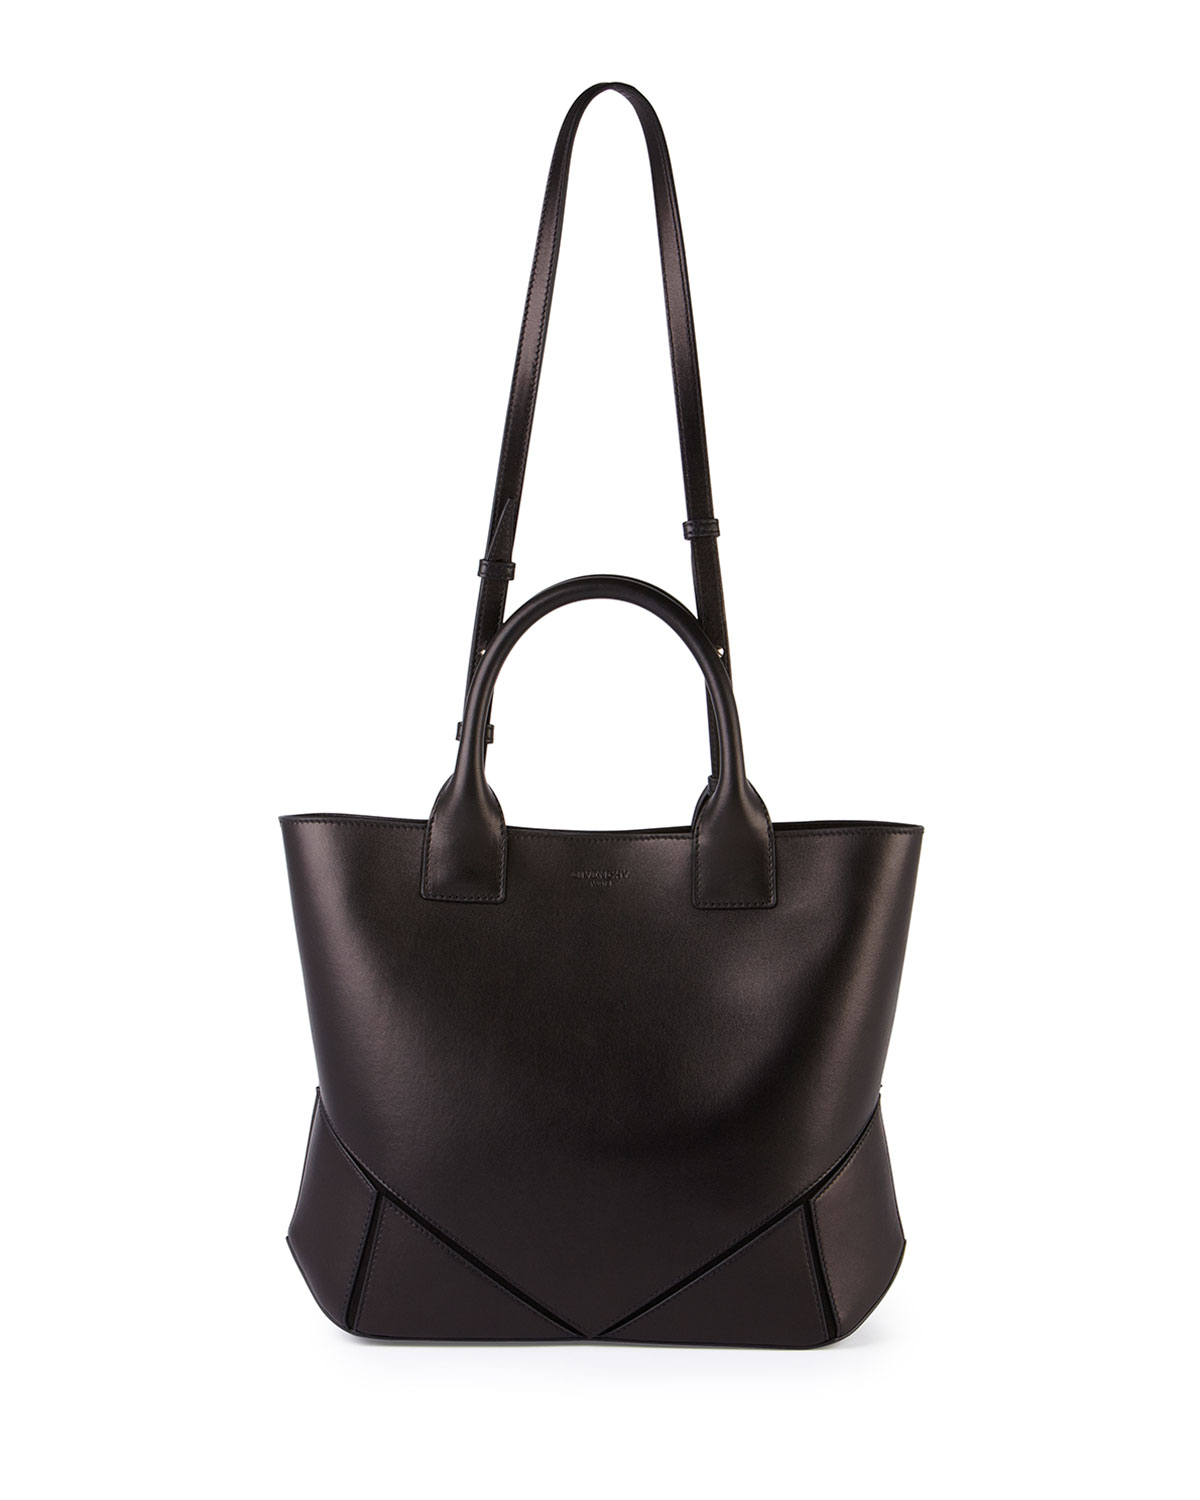 Givenchy Easy Small Leather Tote in Black | Lyst